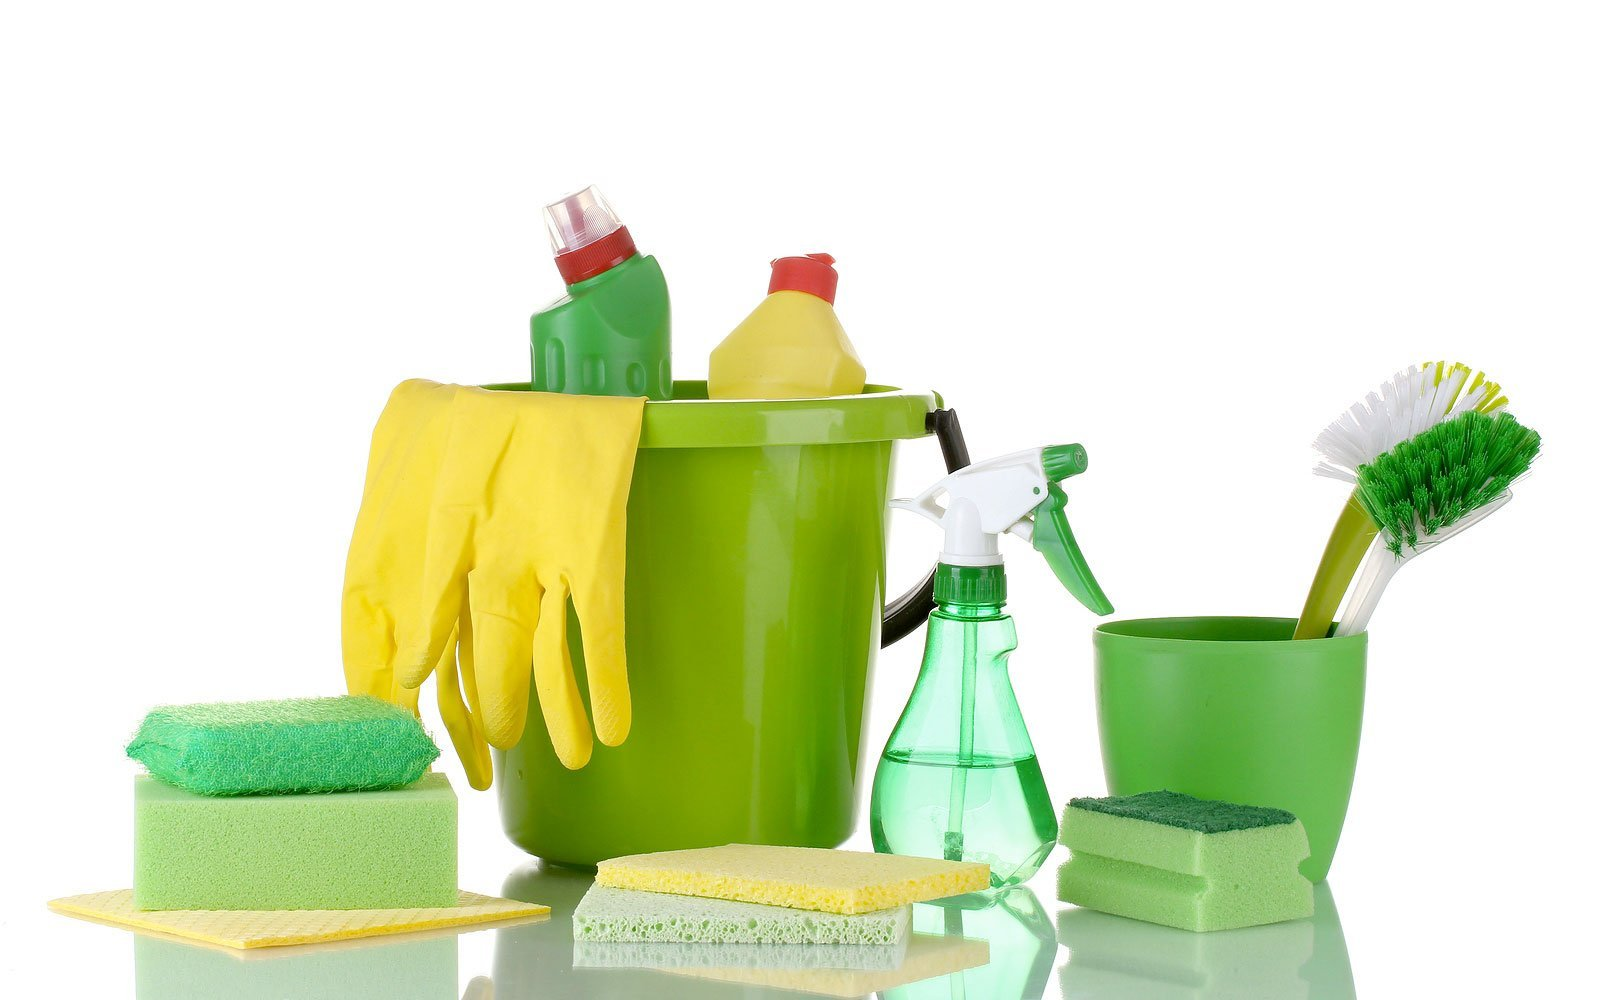 Sparkle Kleen uses green and clean products